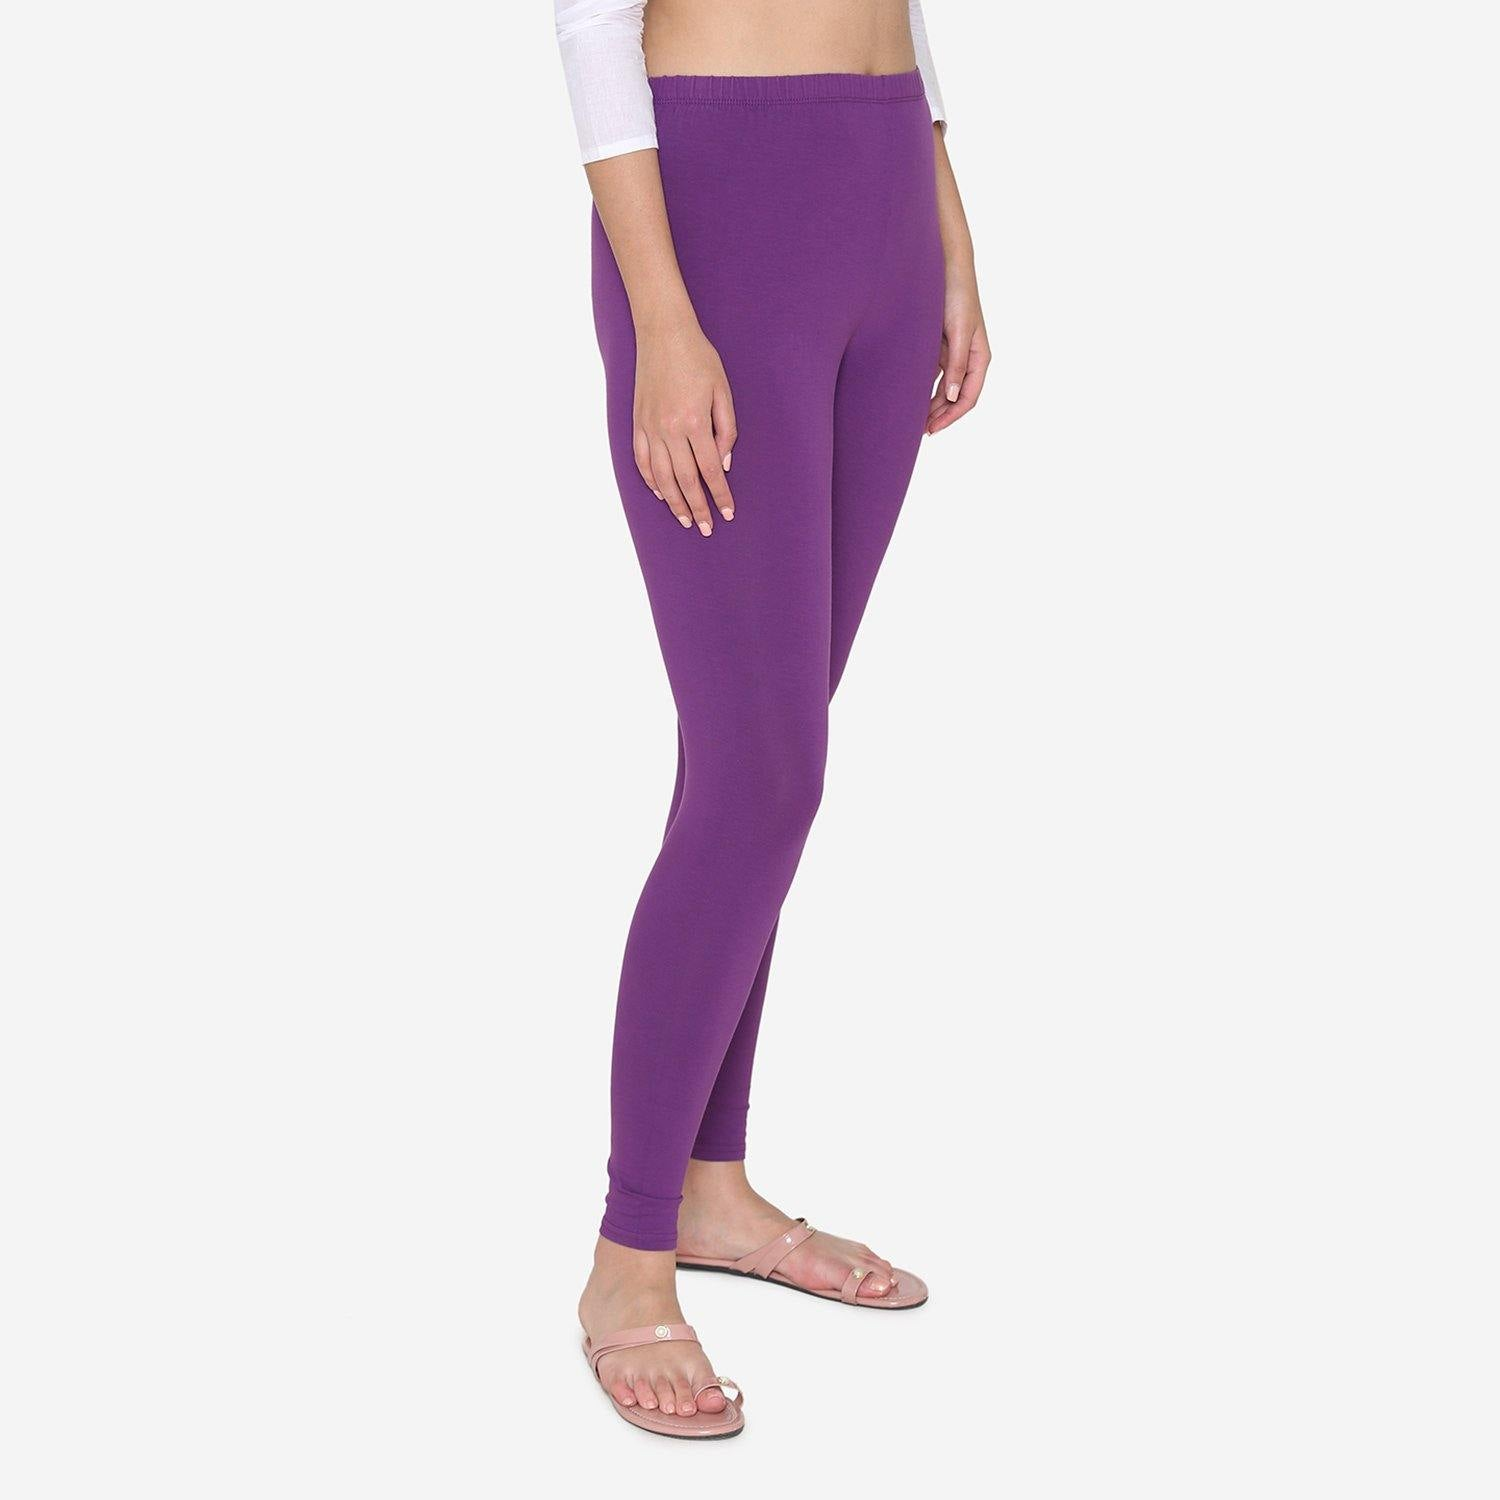 Vami Women's Cotton Stretchable Ankle Leggings - Imperial Purple